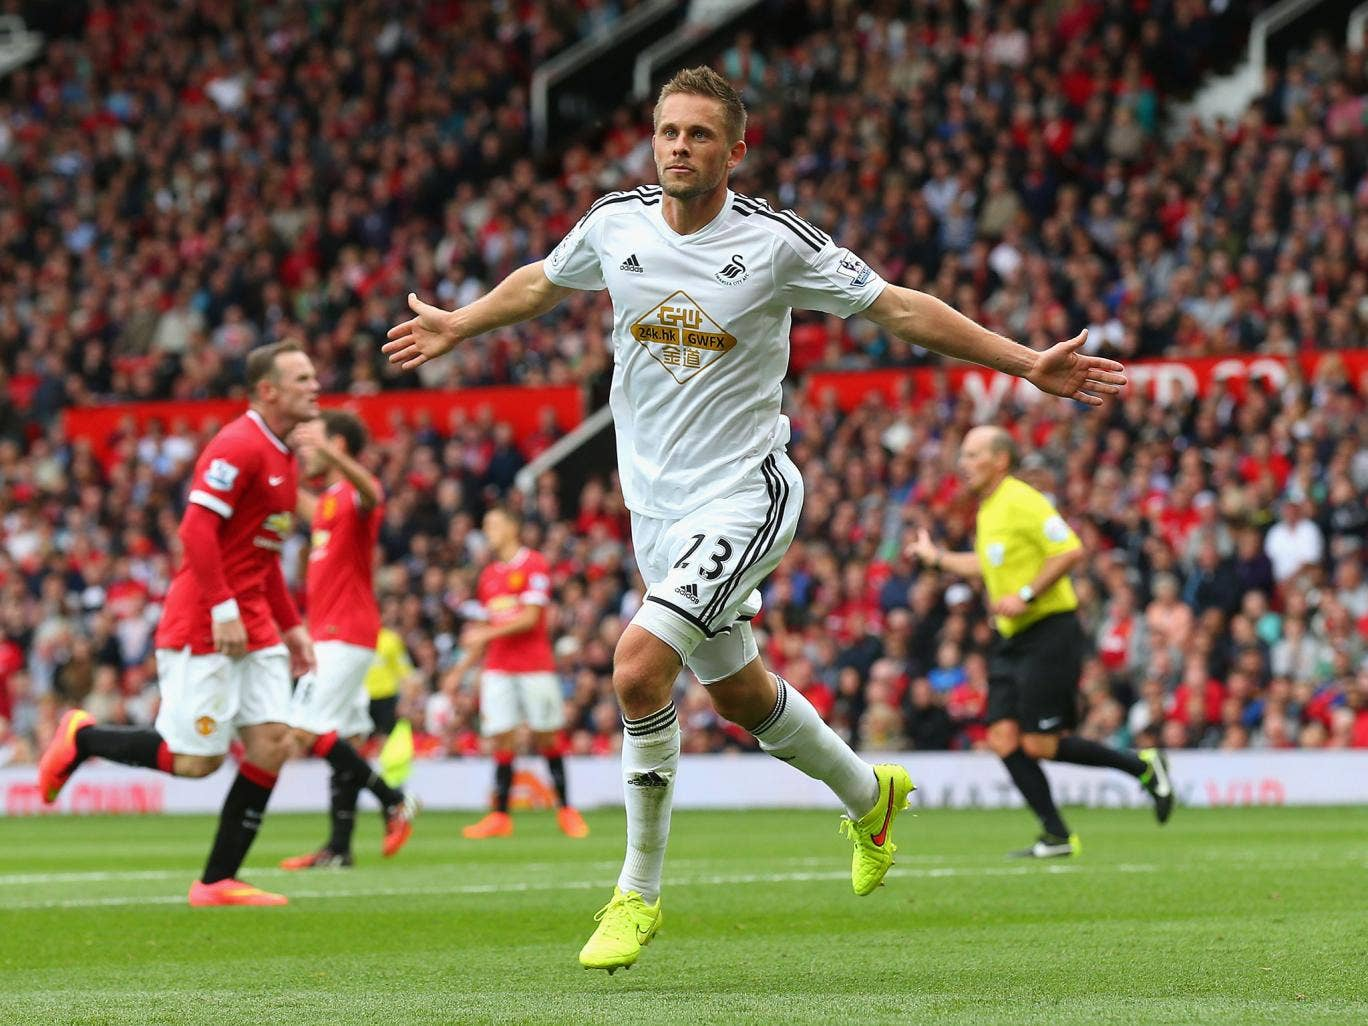 Gylfi Sigurdsson celebrates scoring the winner for Swansea